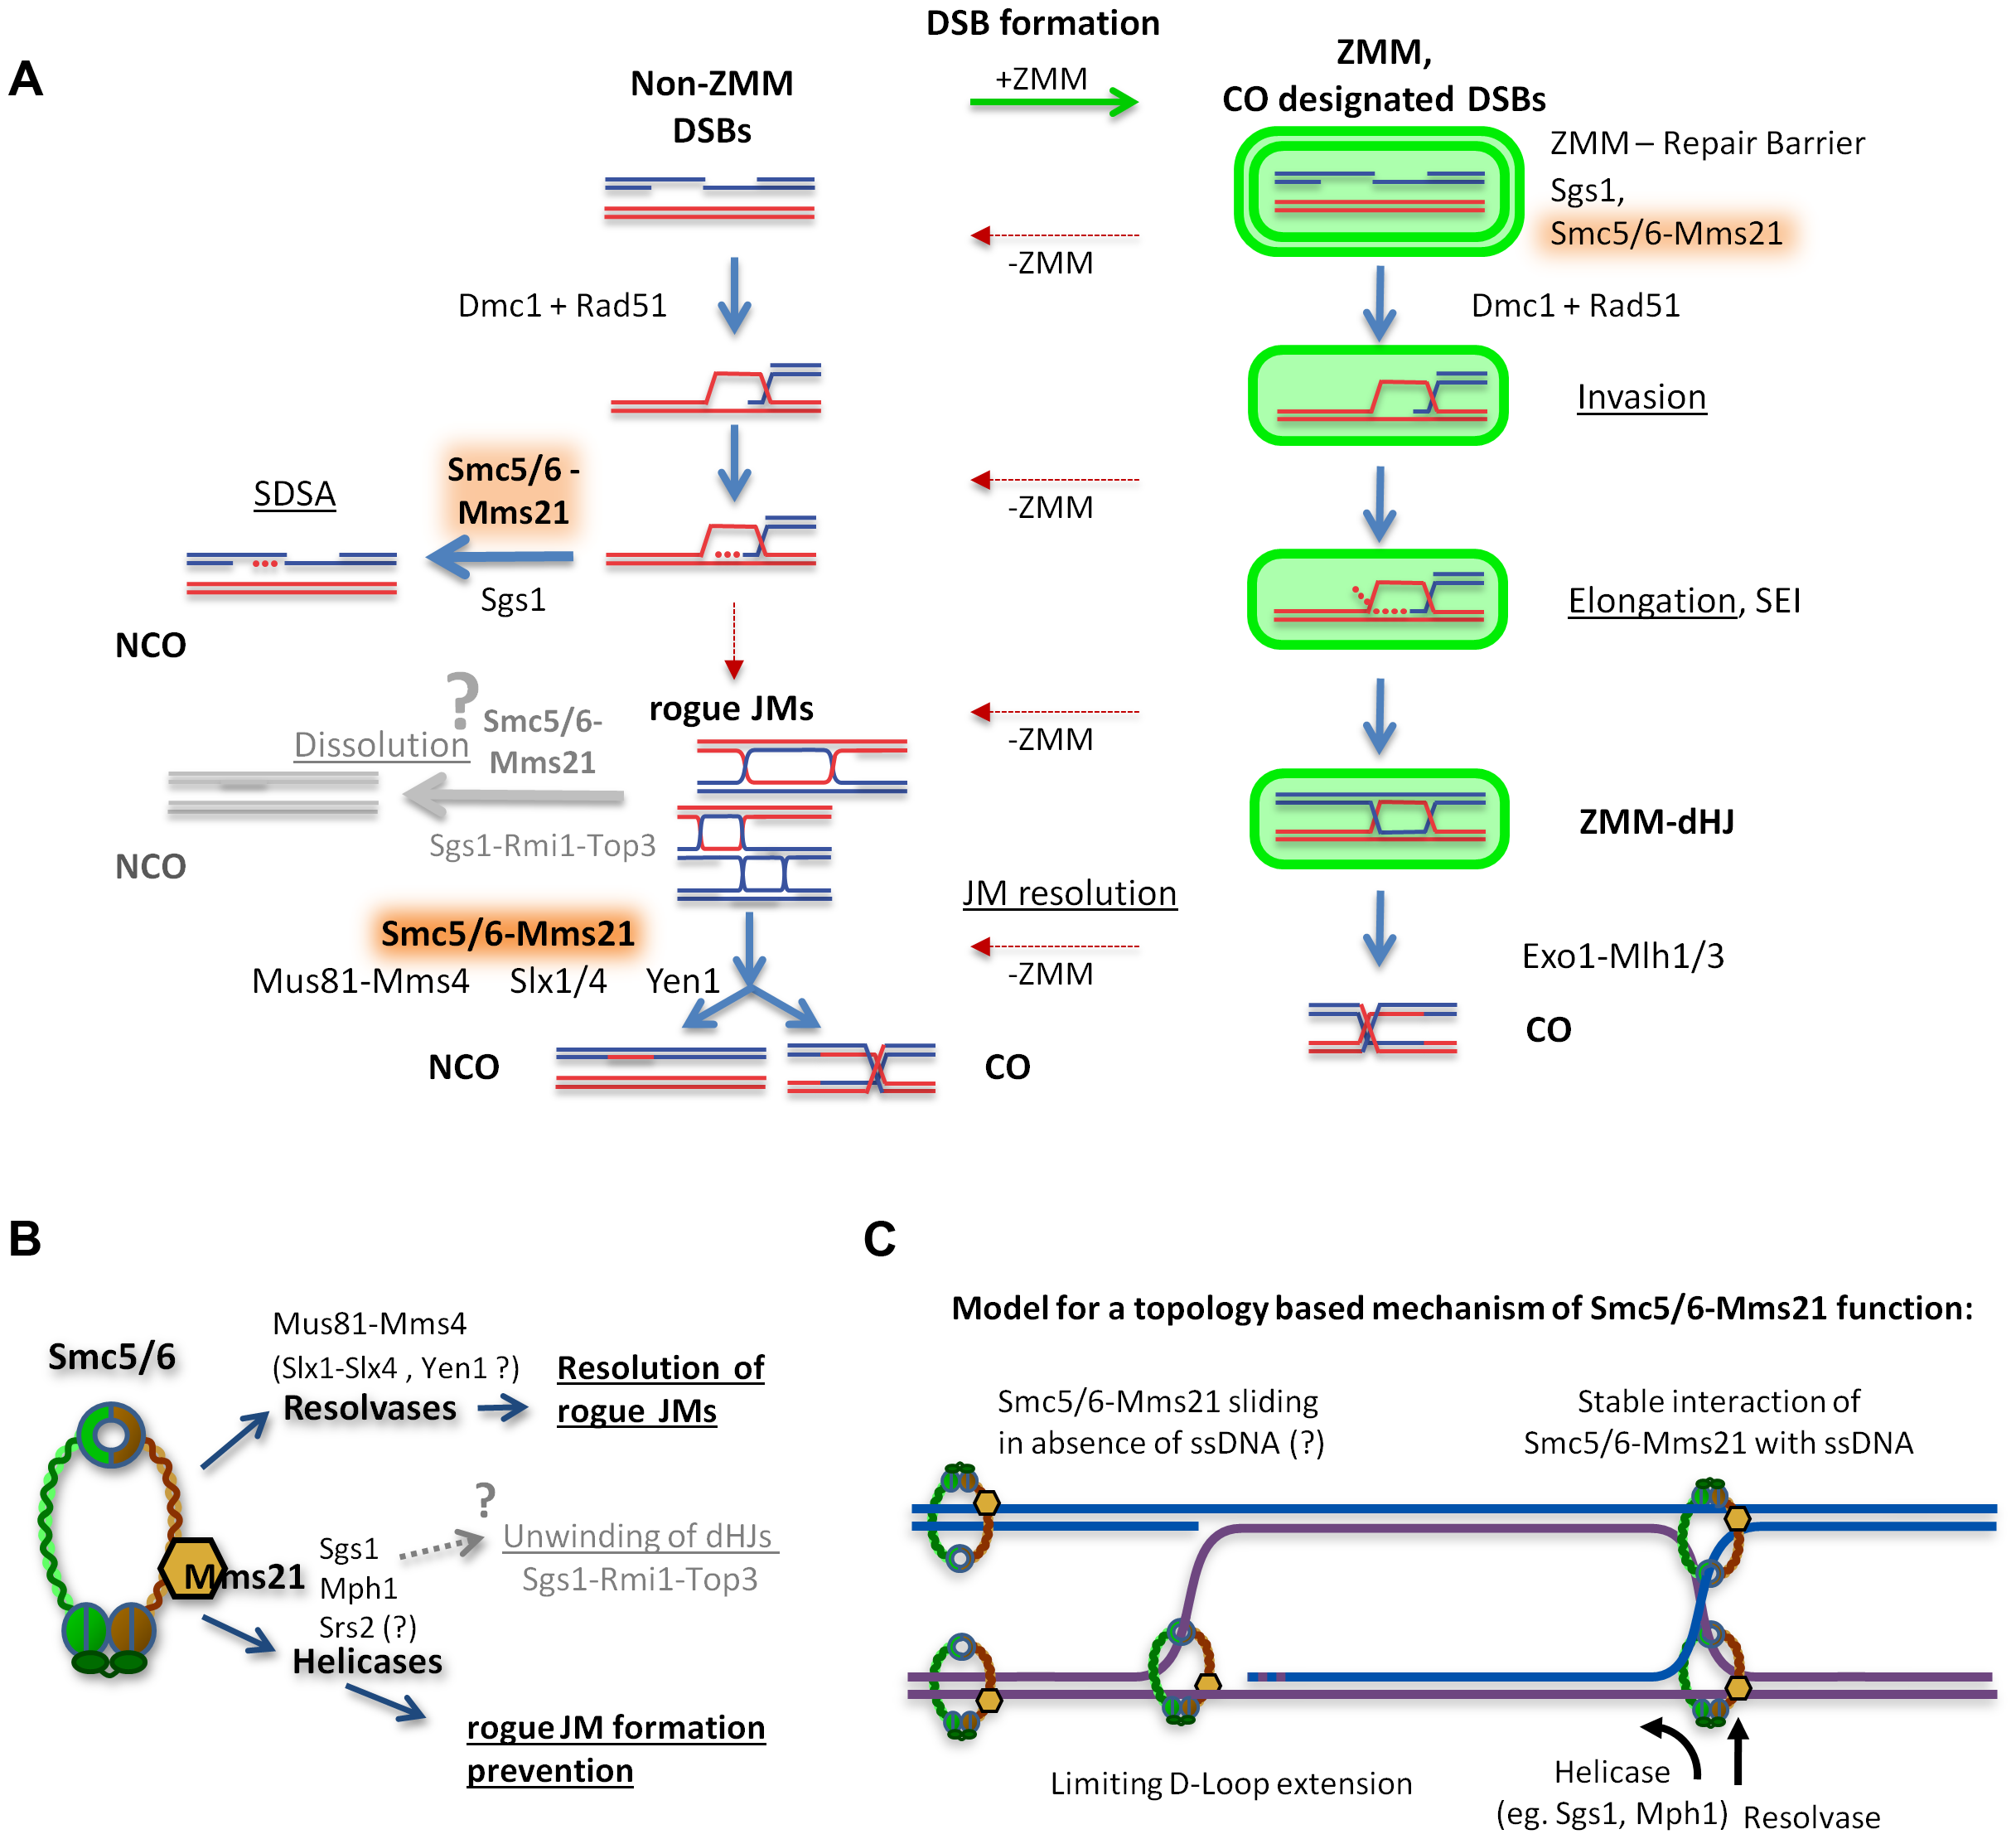 Model of how Smc5/6-Mms21 may antagonize inappropriate JMs in meiotic recombination.